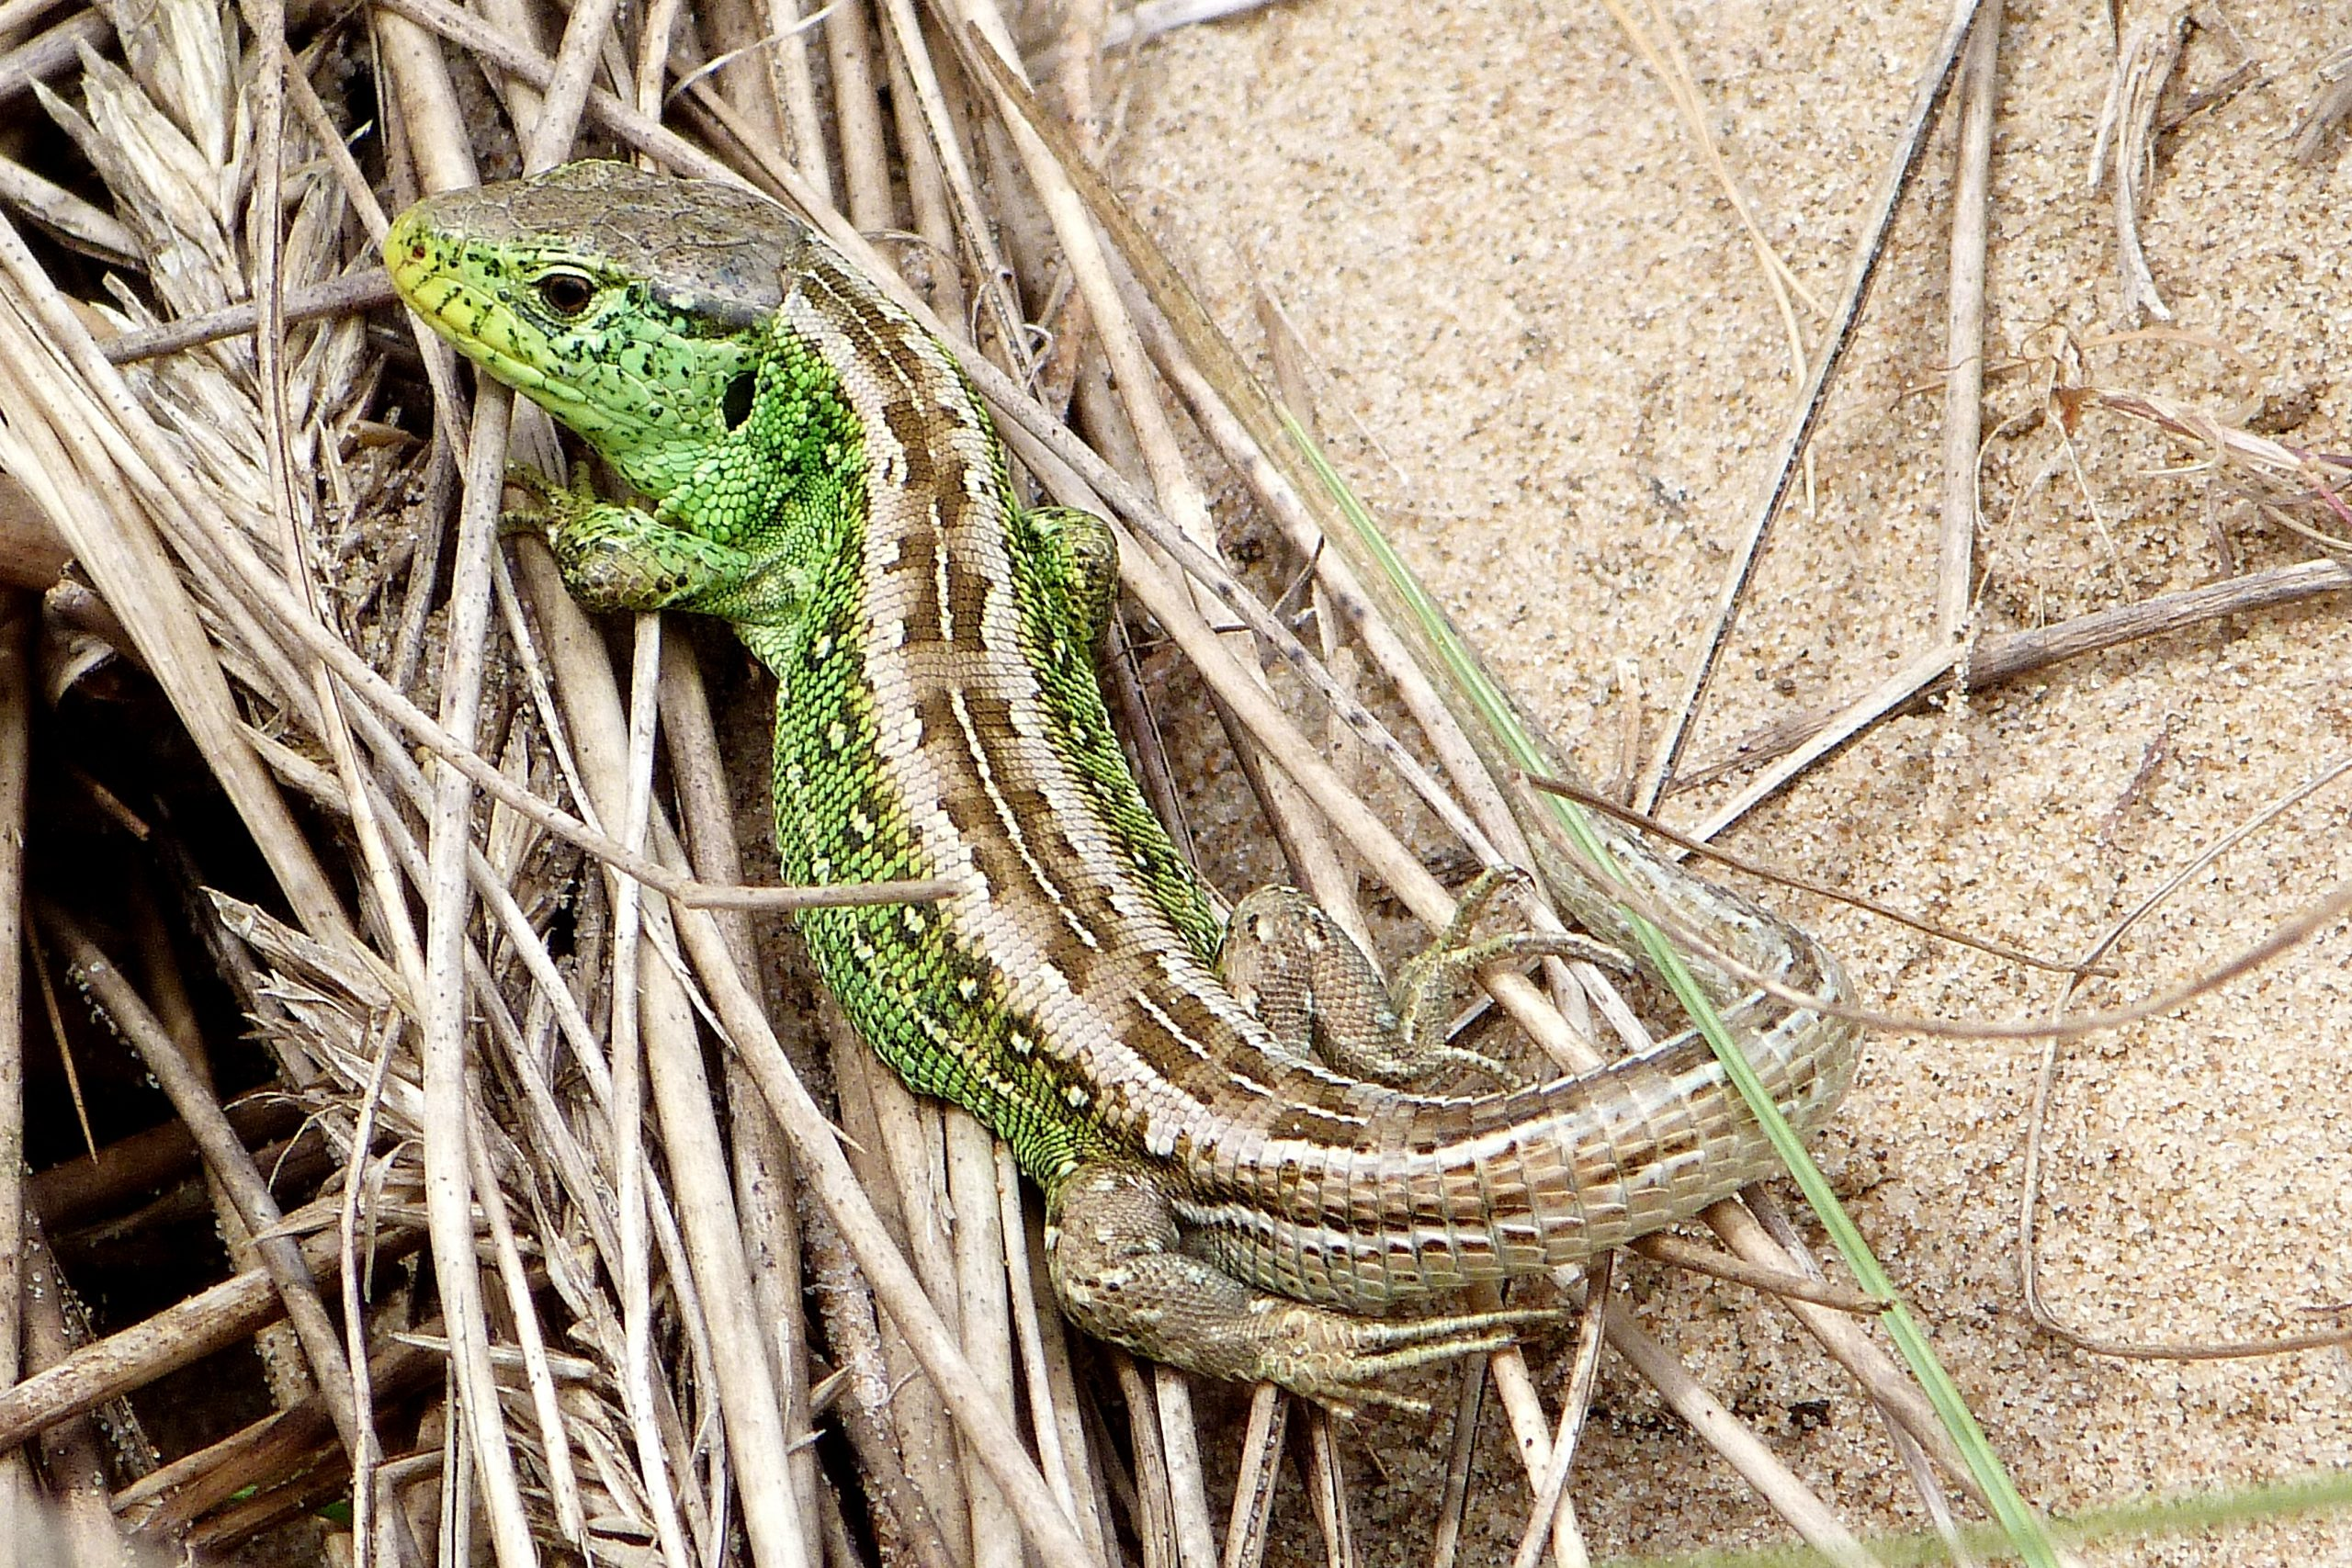 A green and brown sand lizard sits on a sandy grassy patch of sand dune